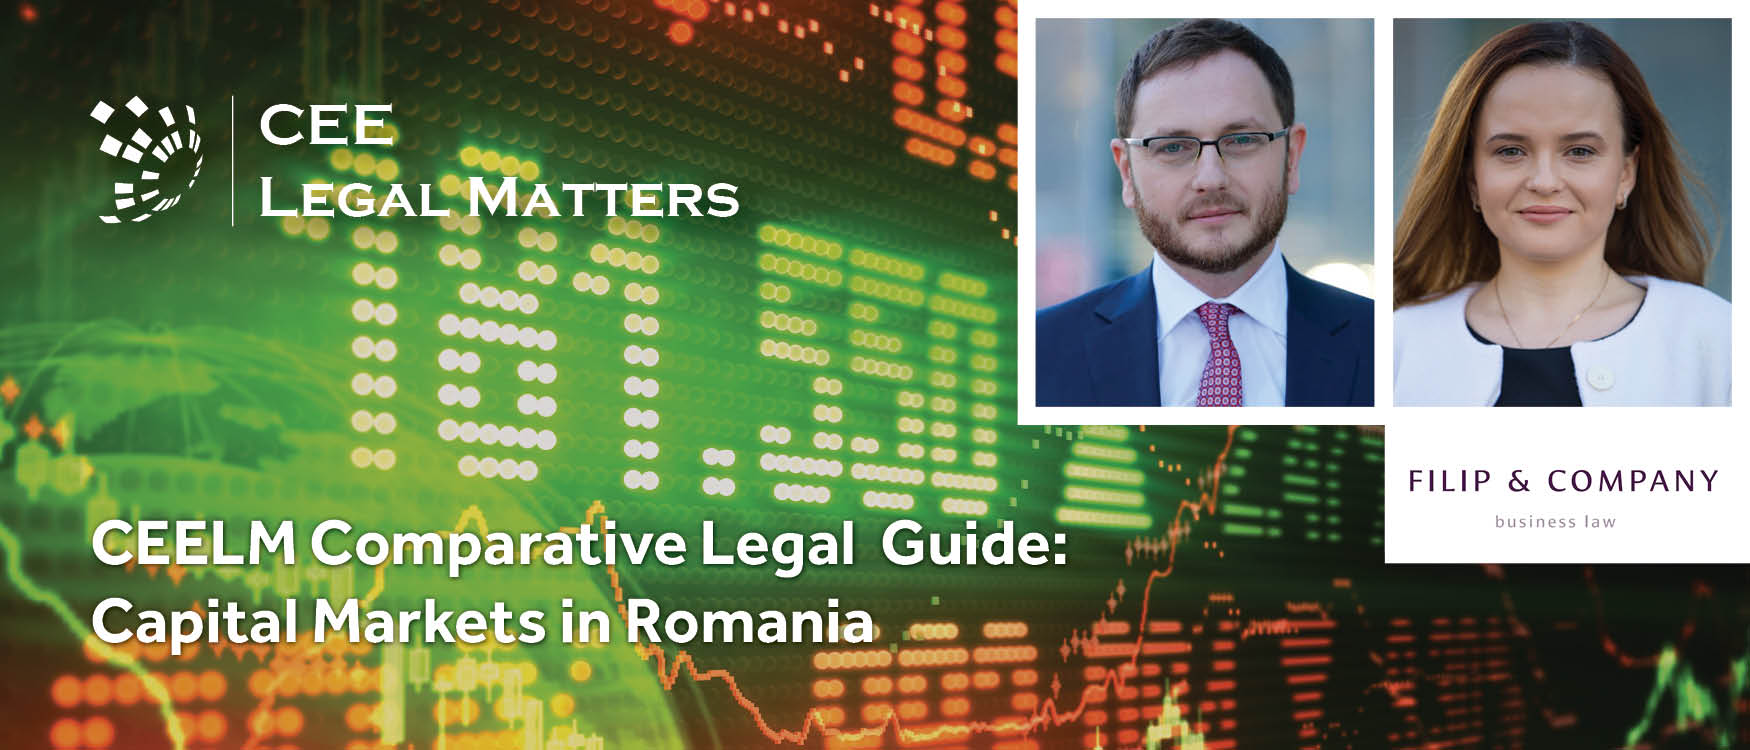 Capital Markets in Romania